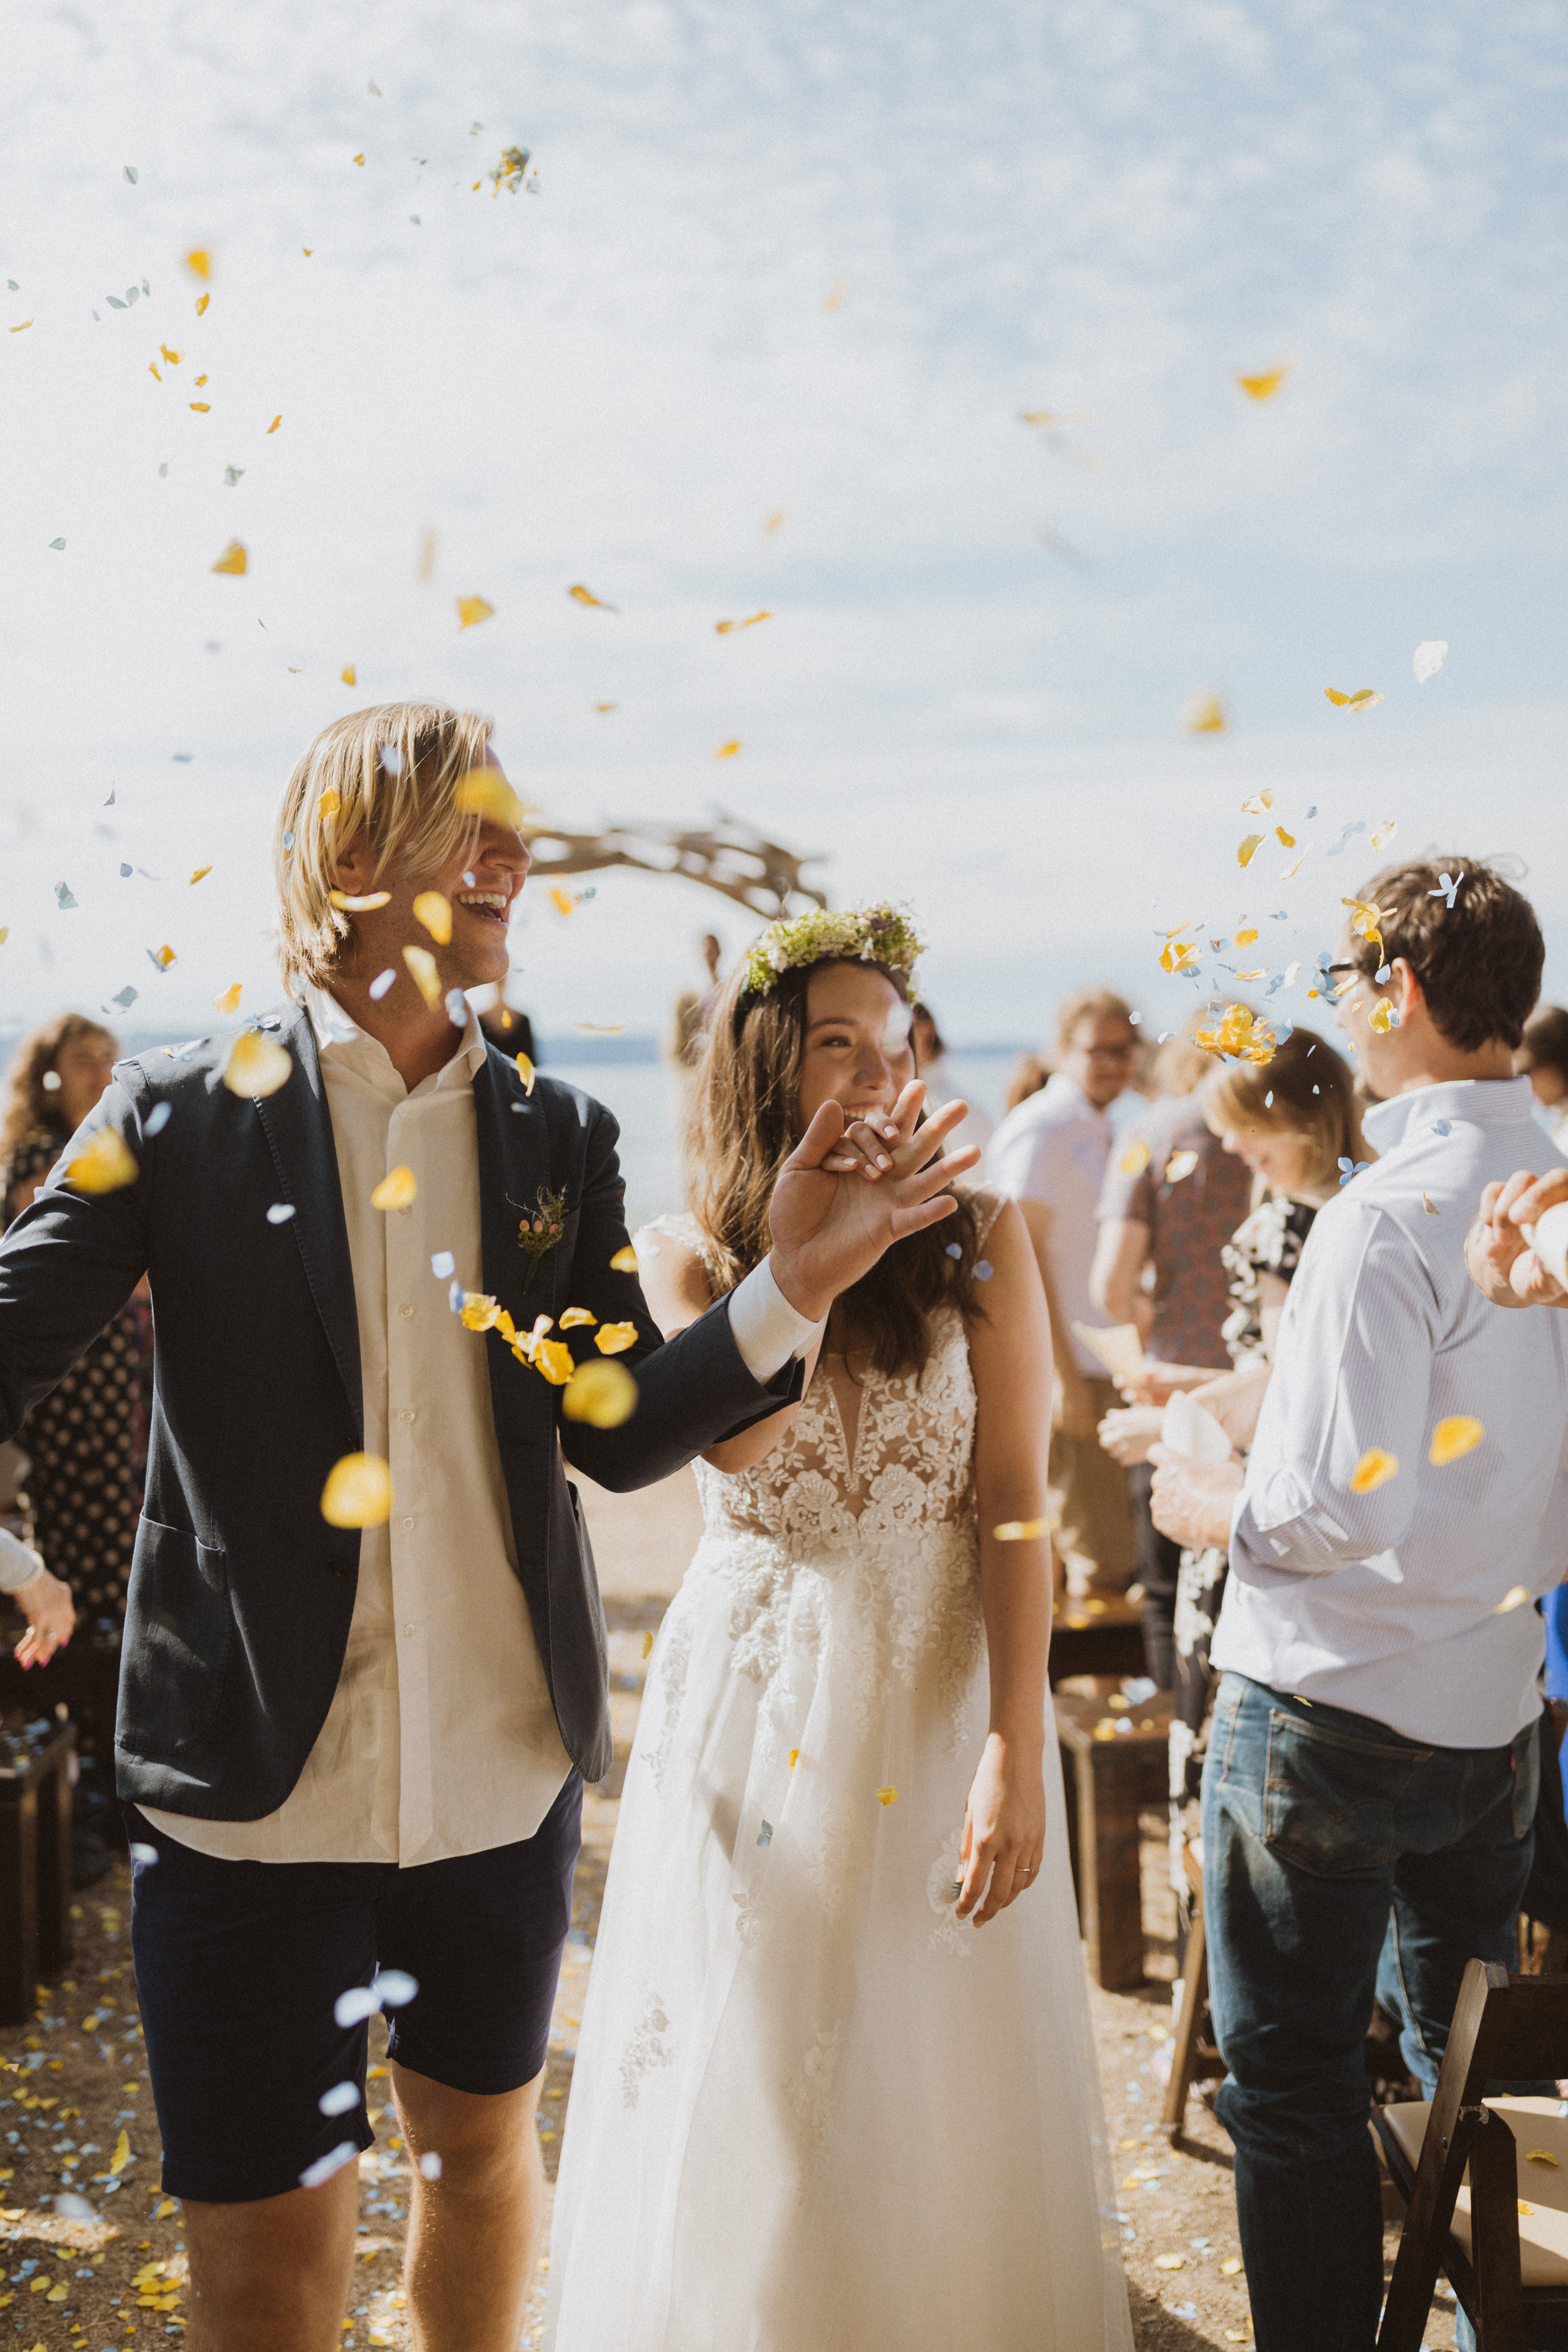 Weddings - Wedding day coverage up to 300 guests..